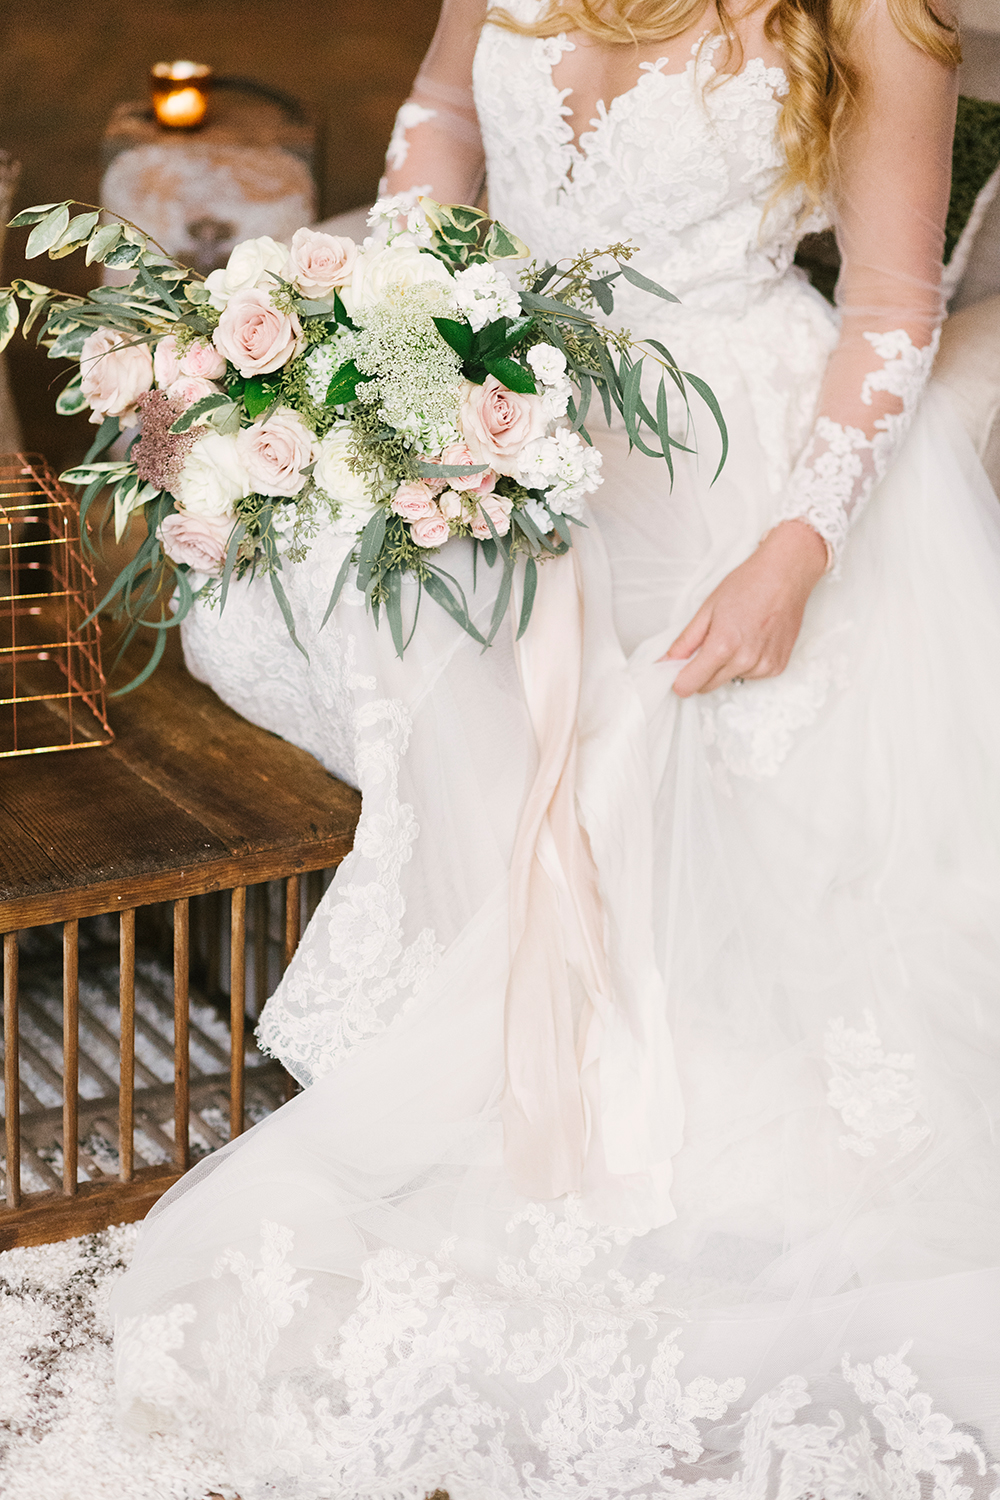 bridal fashion - photo by Alicia King Photography http://ruffledblog.com/upstate-new-york-wedding-ideas-with-copper